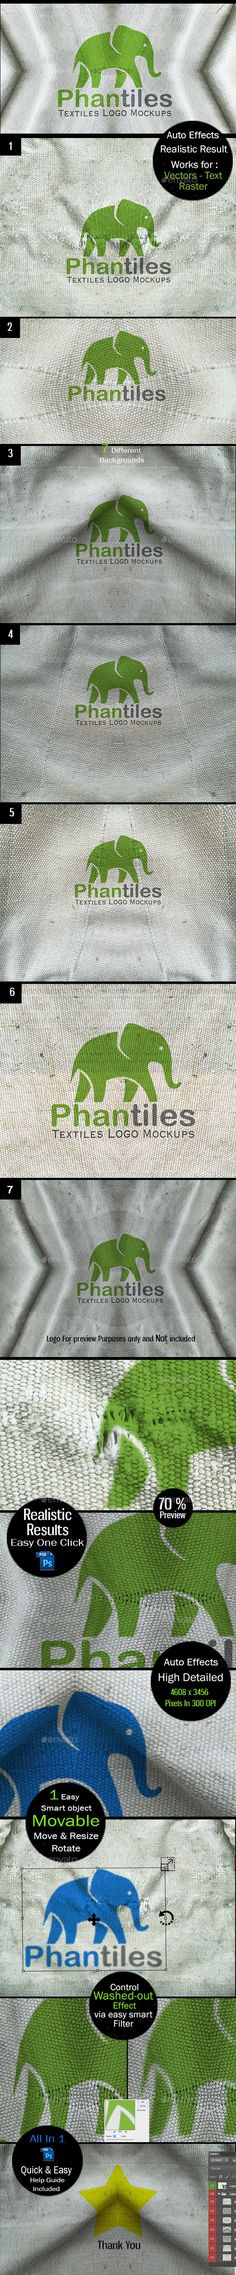 Buy Logo Mockup Set - Vintage Fabrics by Media_Variety on GraphicRiver. Create a highly realistic presentation of your logos in 7 Different Styles with a dynamic movable smart object for th. Graphic Design Fonts, Logo Design, Photoshop, Pencil Illustration, Vintage Fabrics, Print Templates, Background Patterns, Tricks, Retro